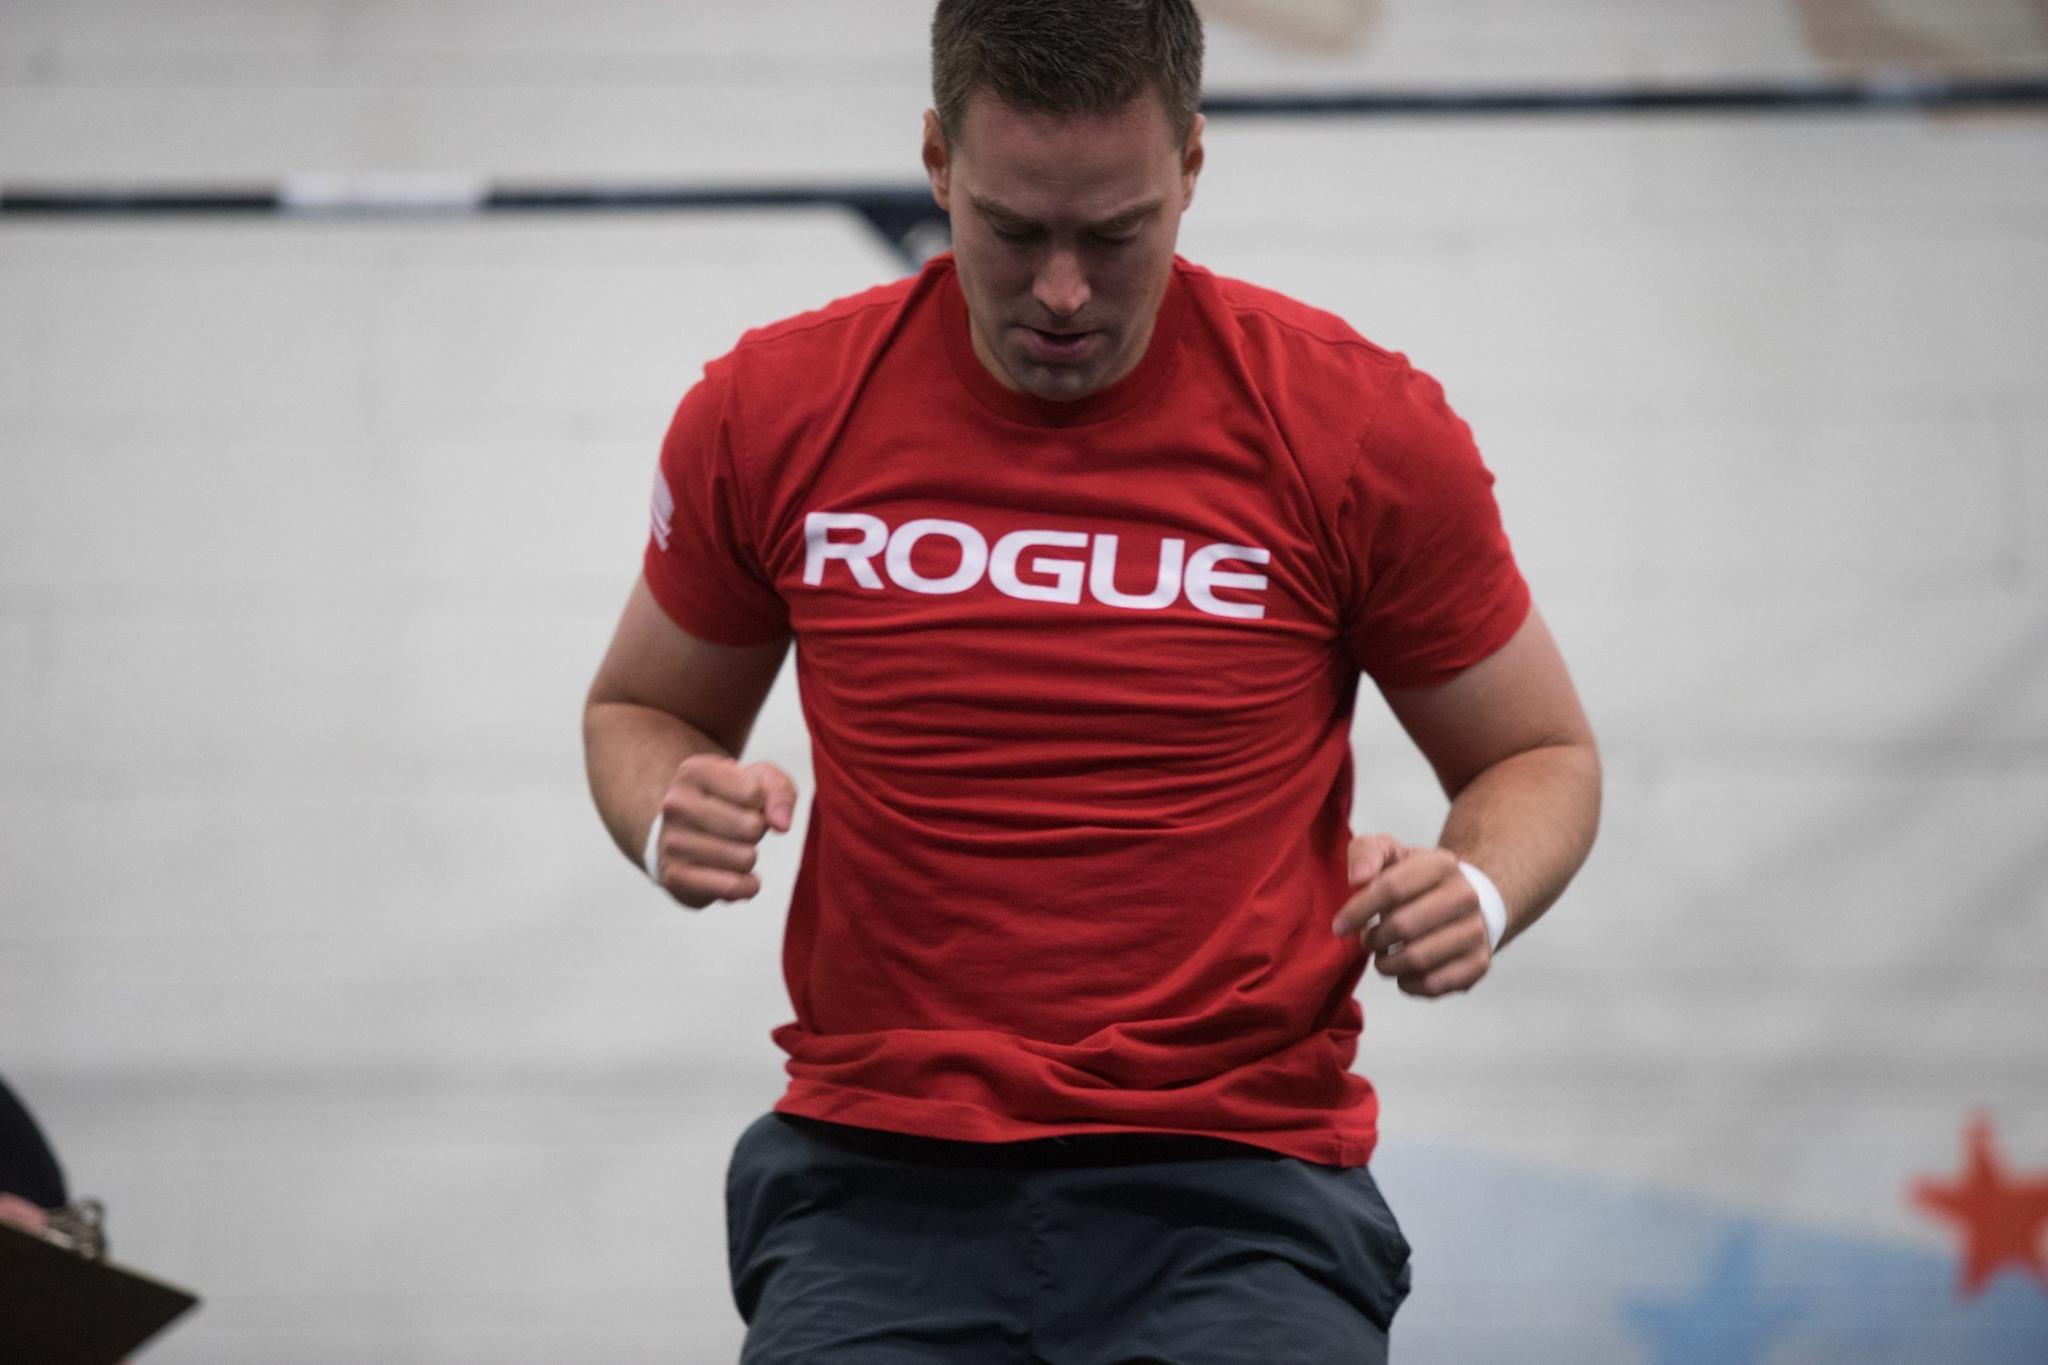 *Friday Night Lights starts at 5:15pm. We will do our very best to accommodate heats. The Open WOD is a 15 min AMRAP, we will have a 2 min transition so each heat is a total of 17min.